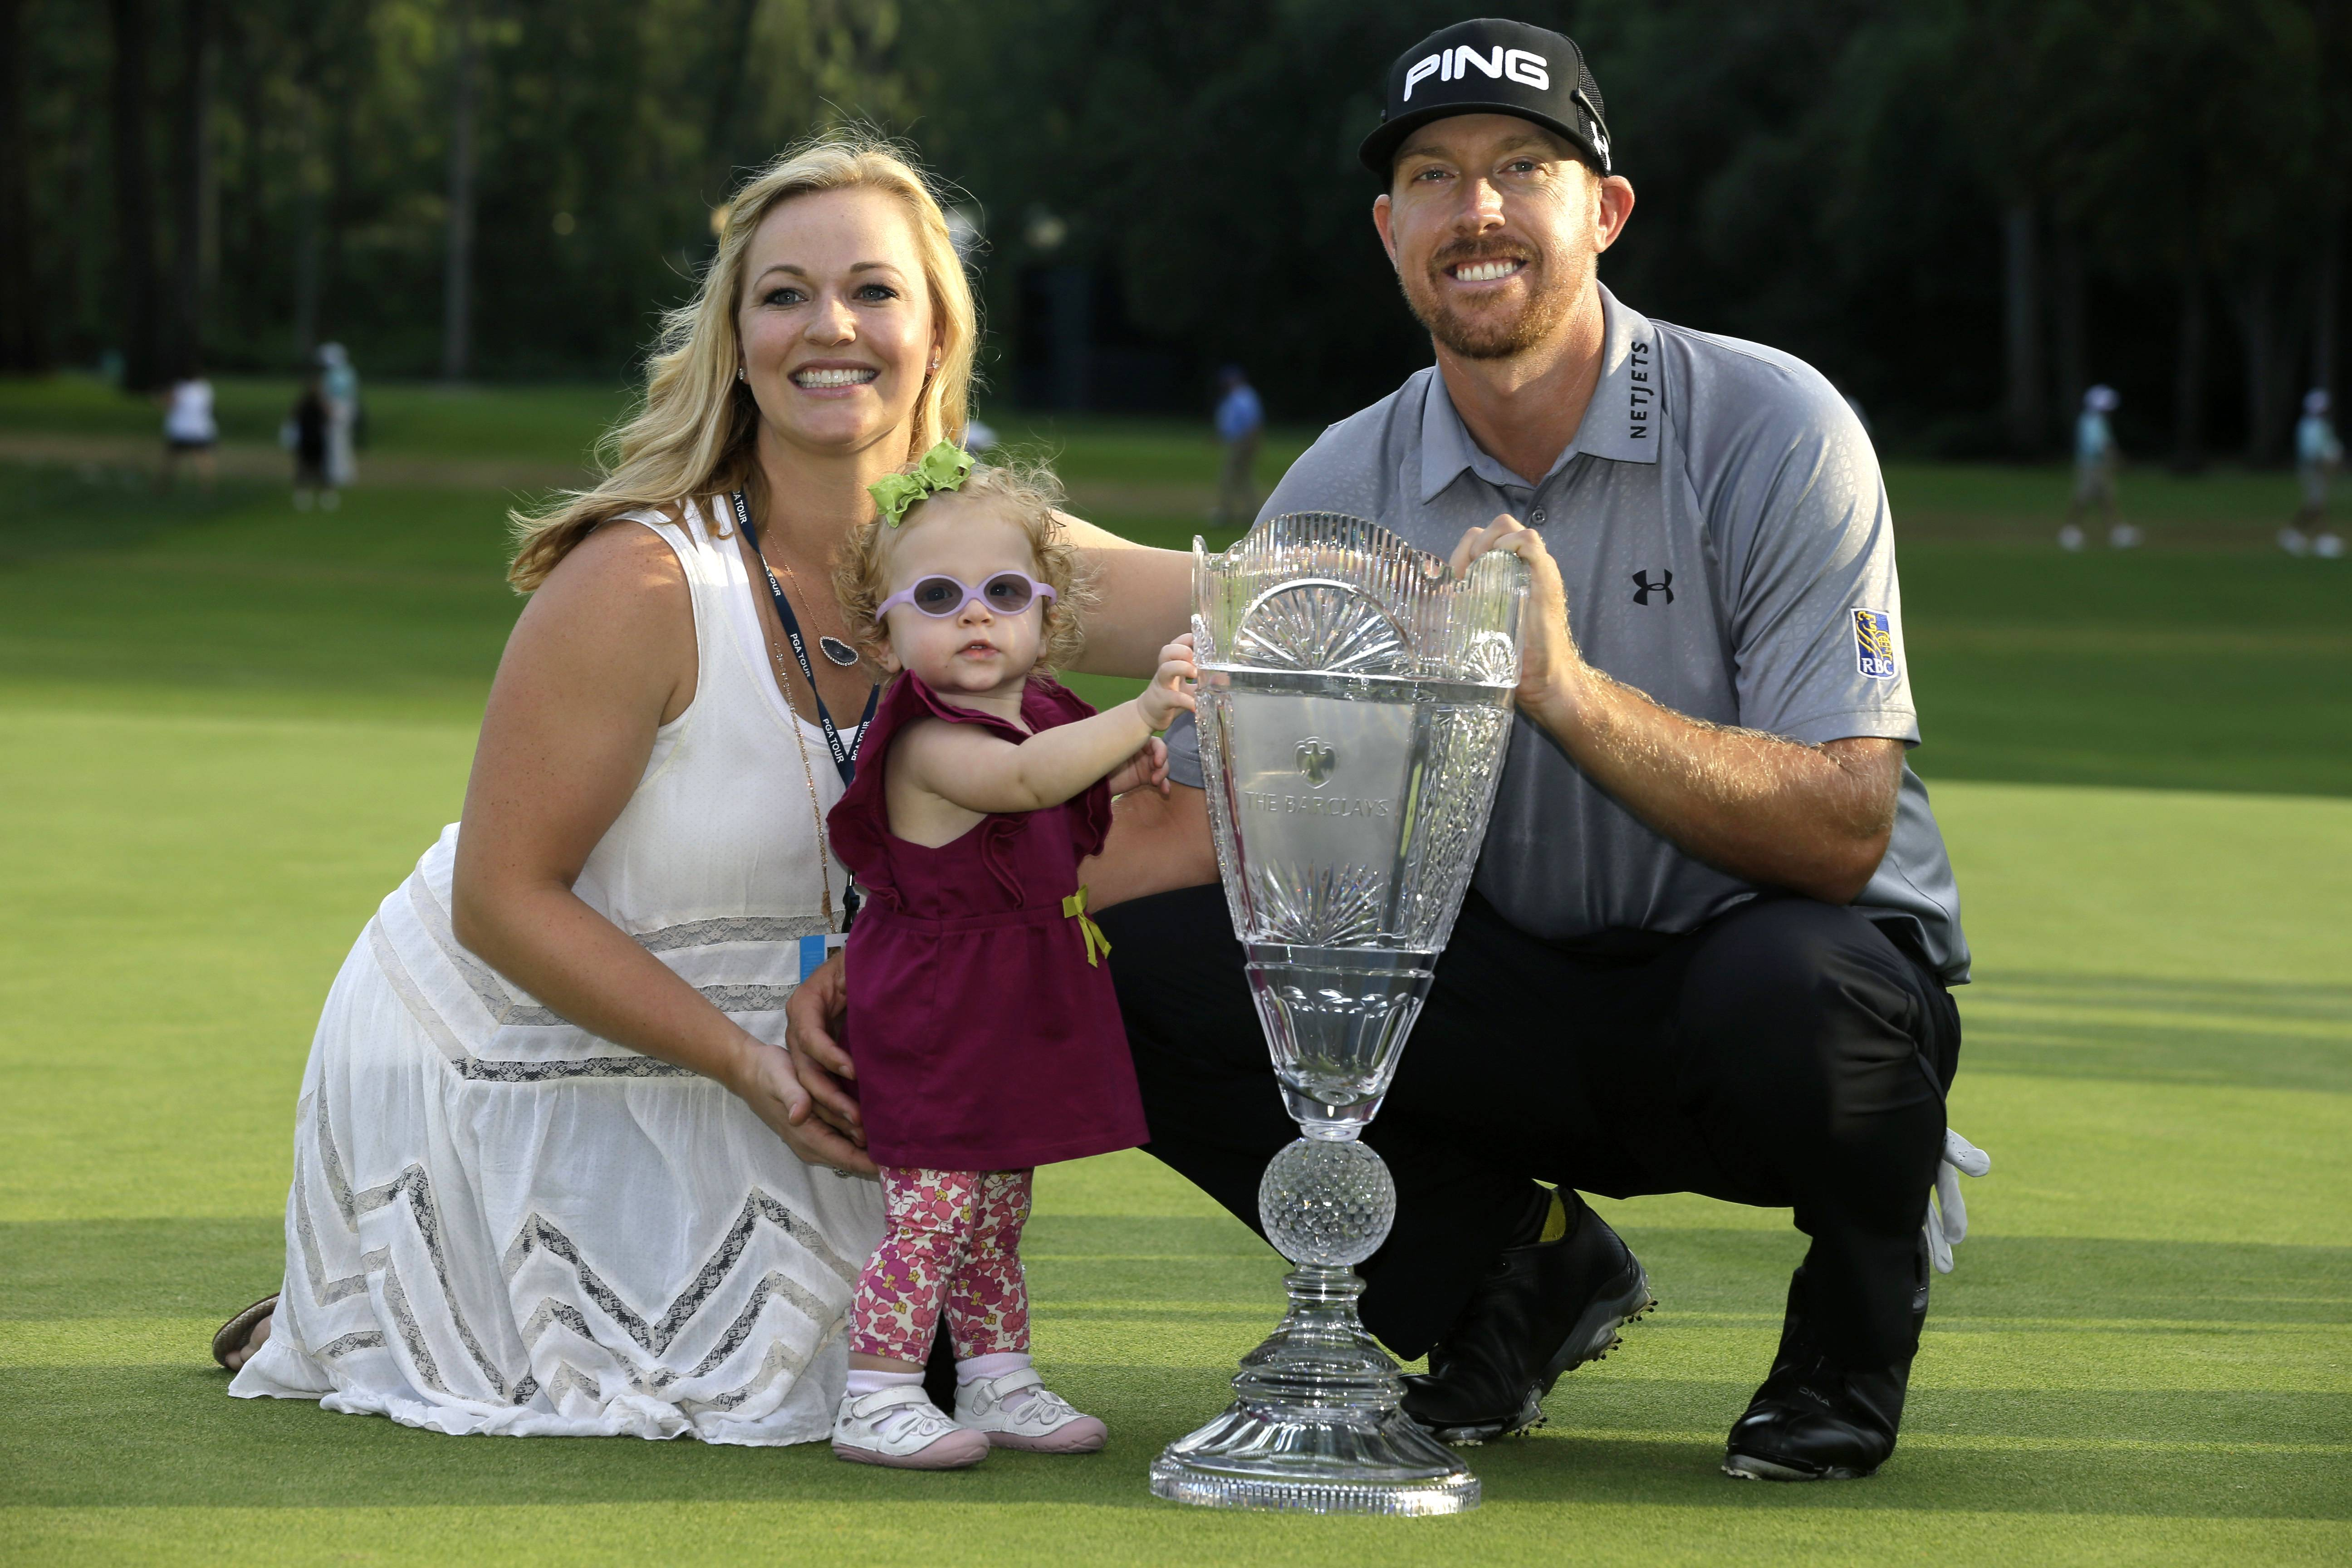 Hunter Mahan poses with his wife, Kandi, and daughter Zoe and the trophy after winning the The Barclays golf tournament Sunday in Paramus, N.J.